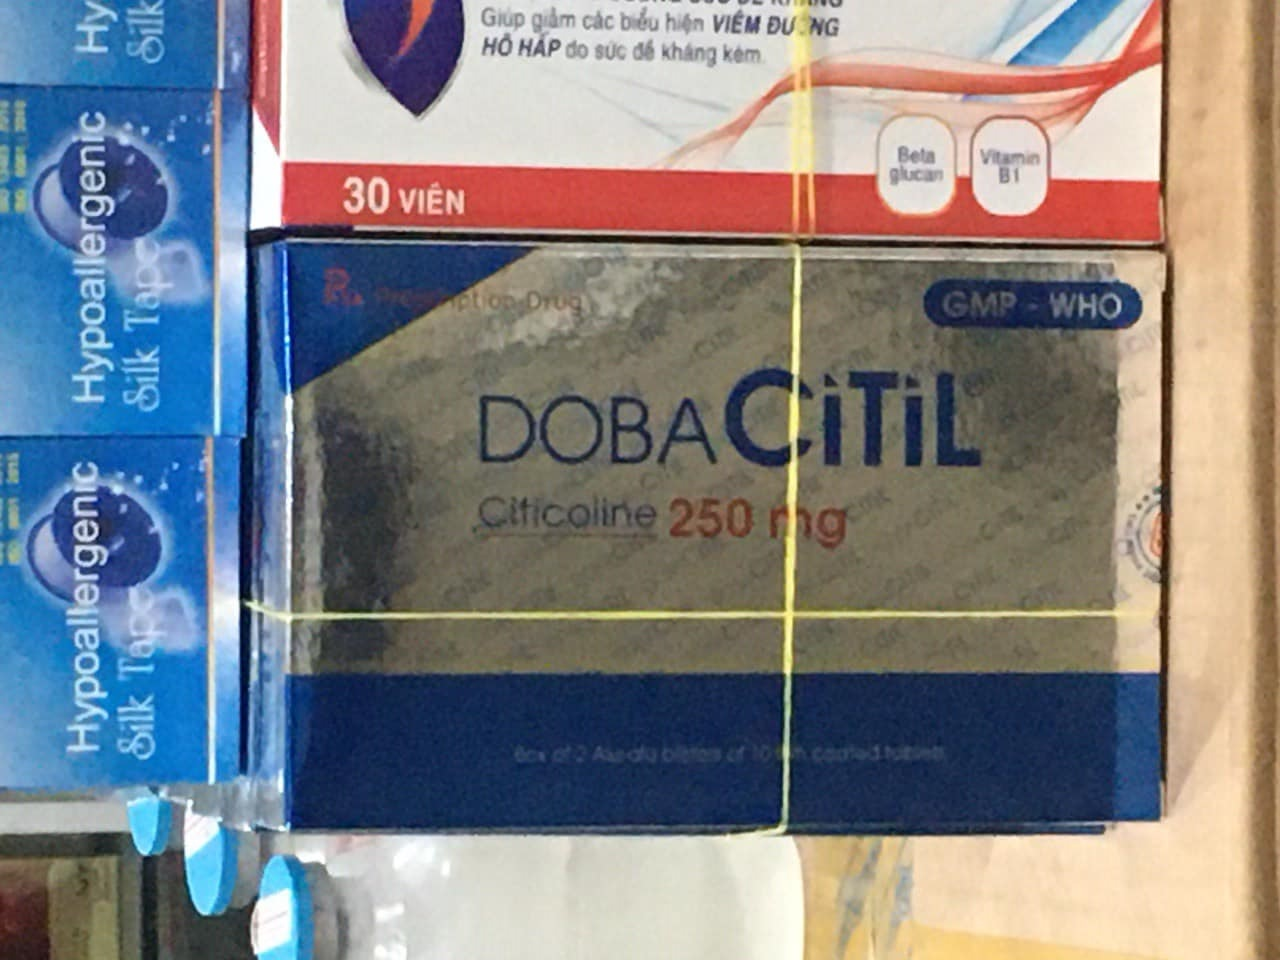 Dobacitil 250mg